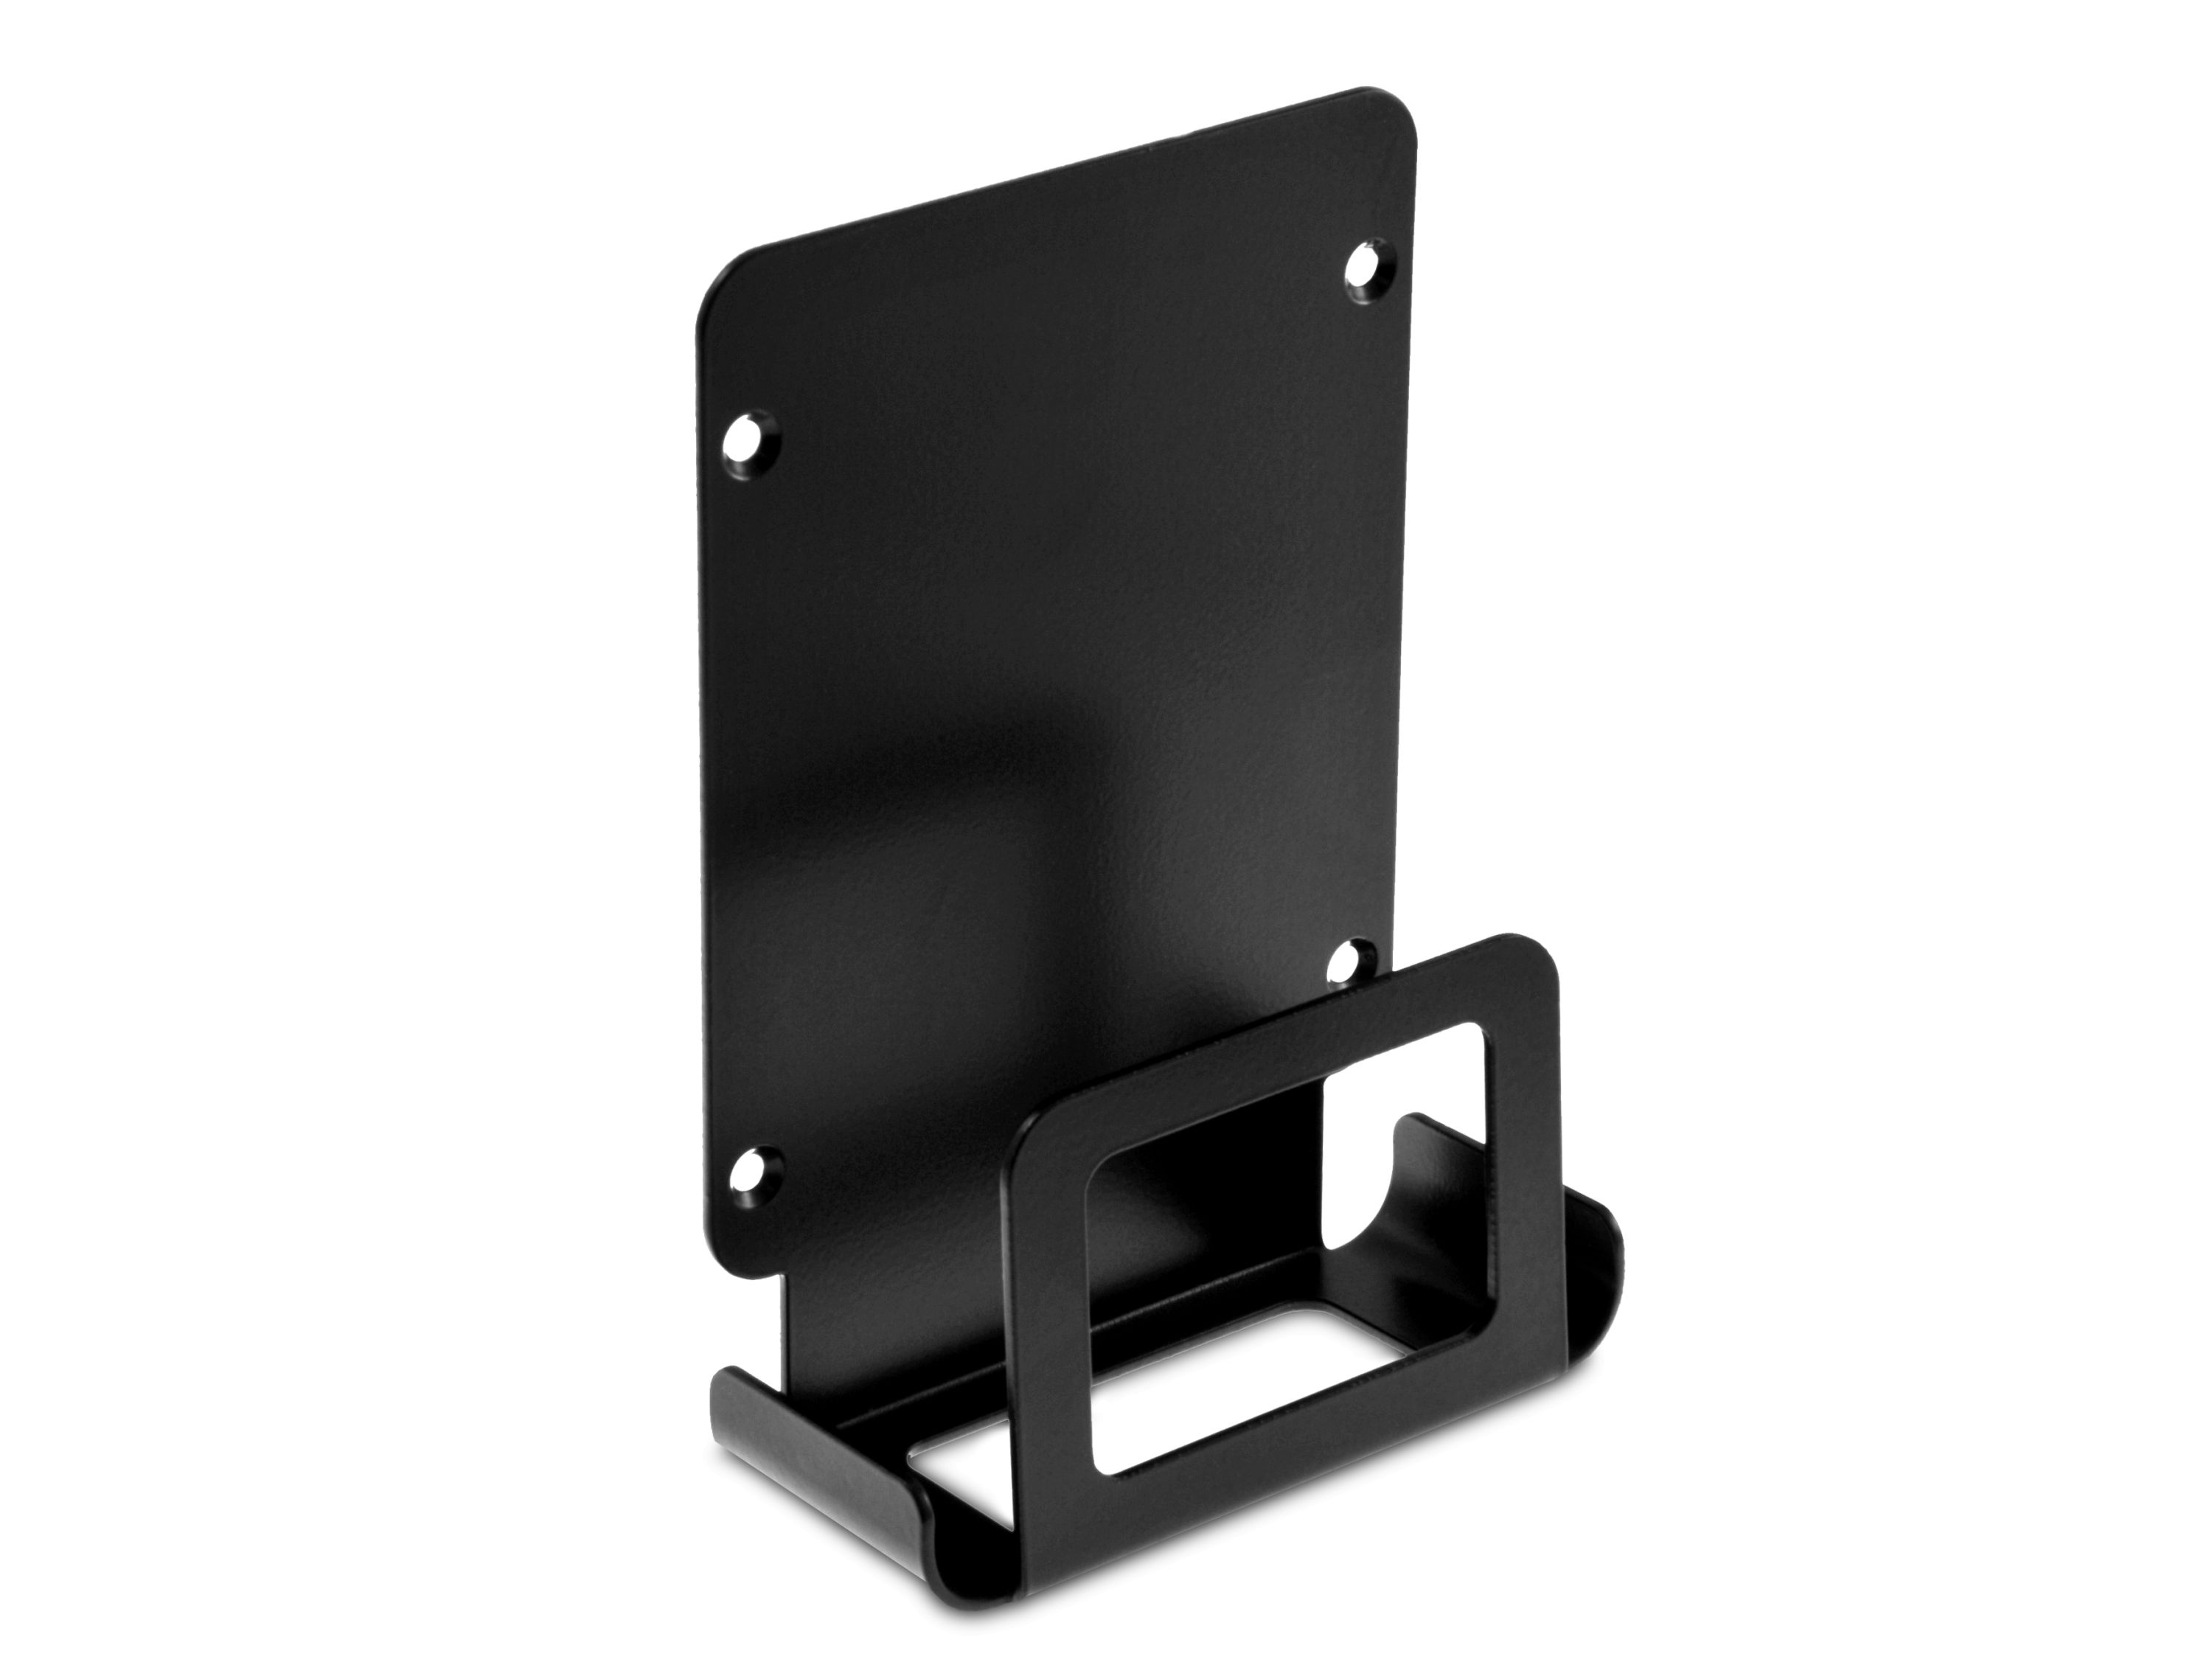 Vesa Mount Bracket Wall Plate For Nuc Chassis